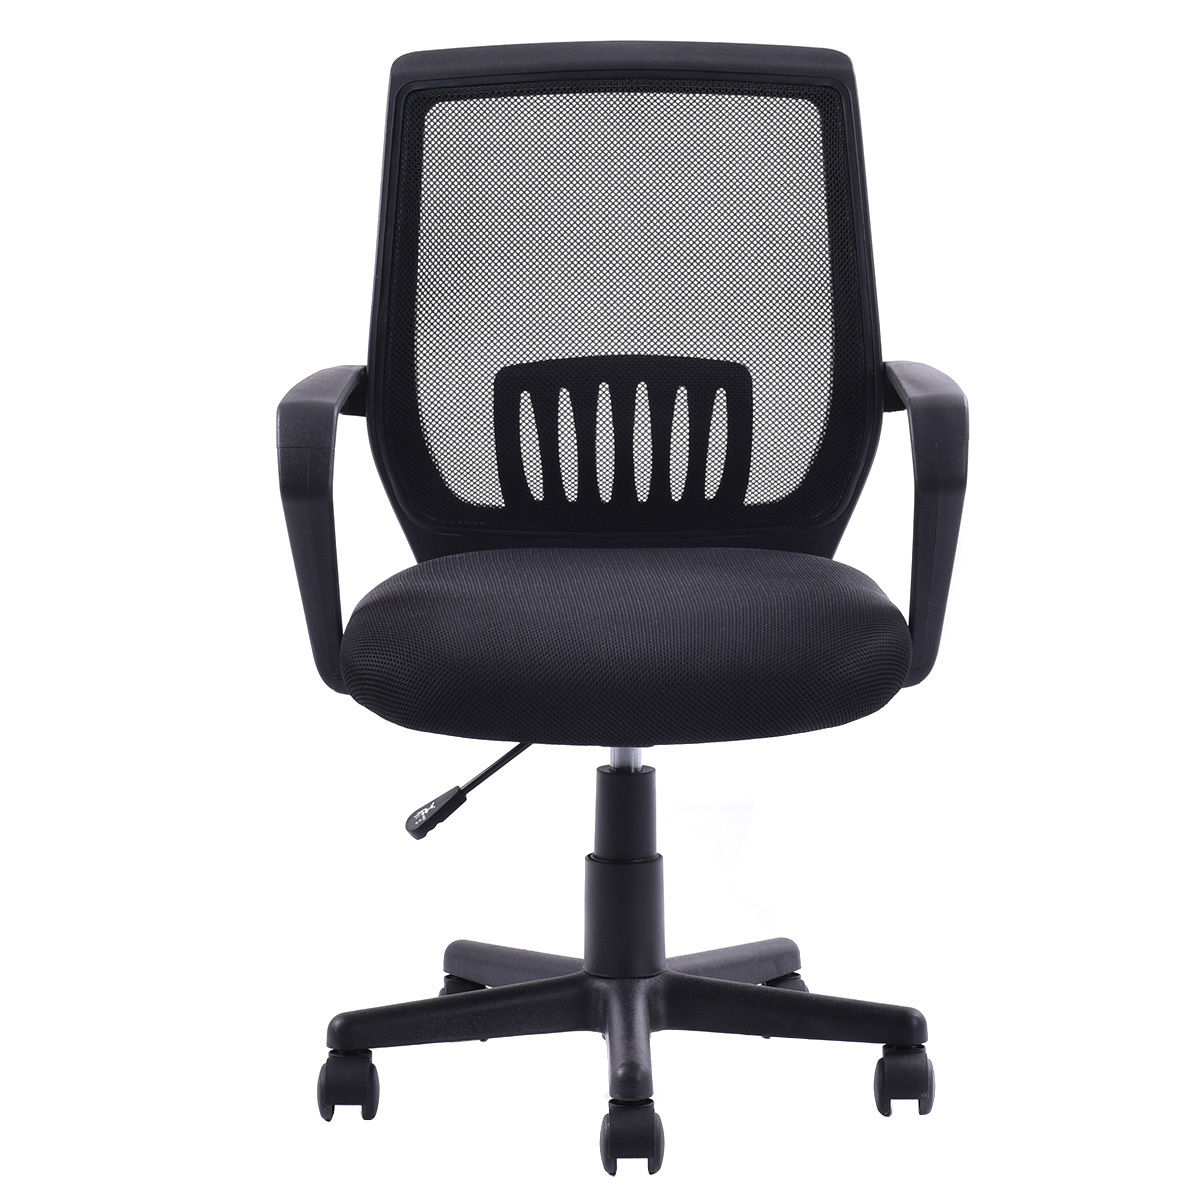 costway modern ergonomic mid-back mesh computer office chair desk